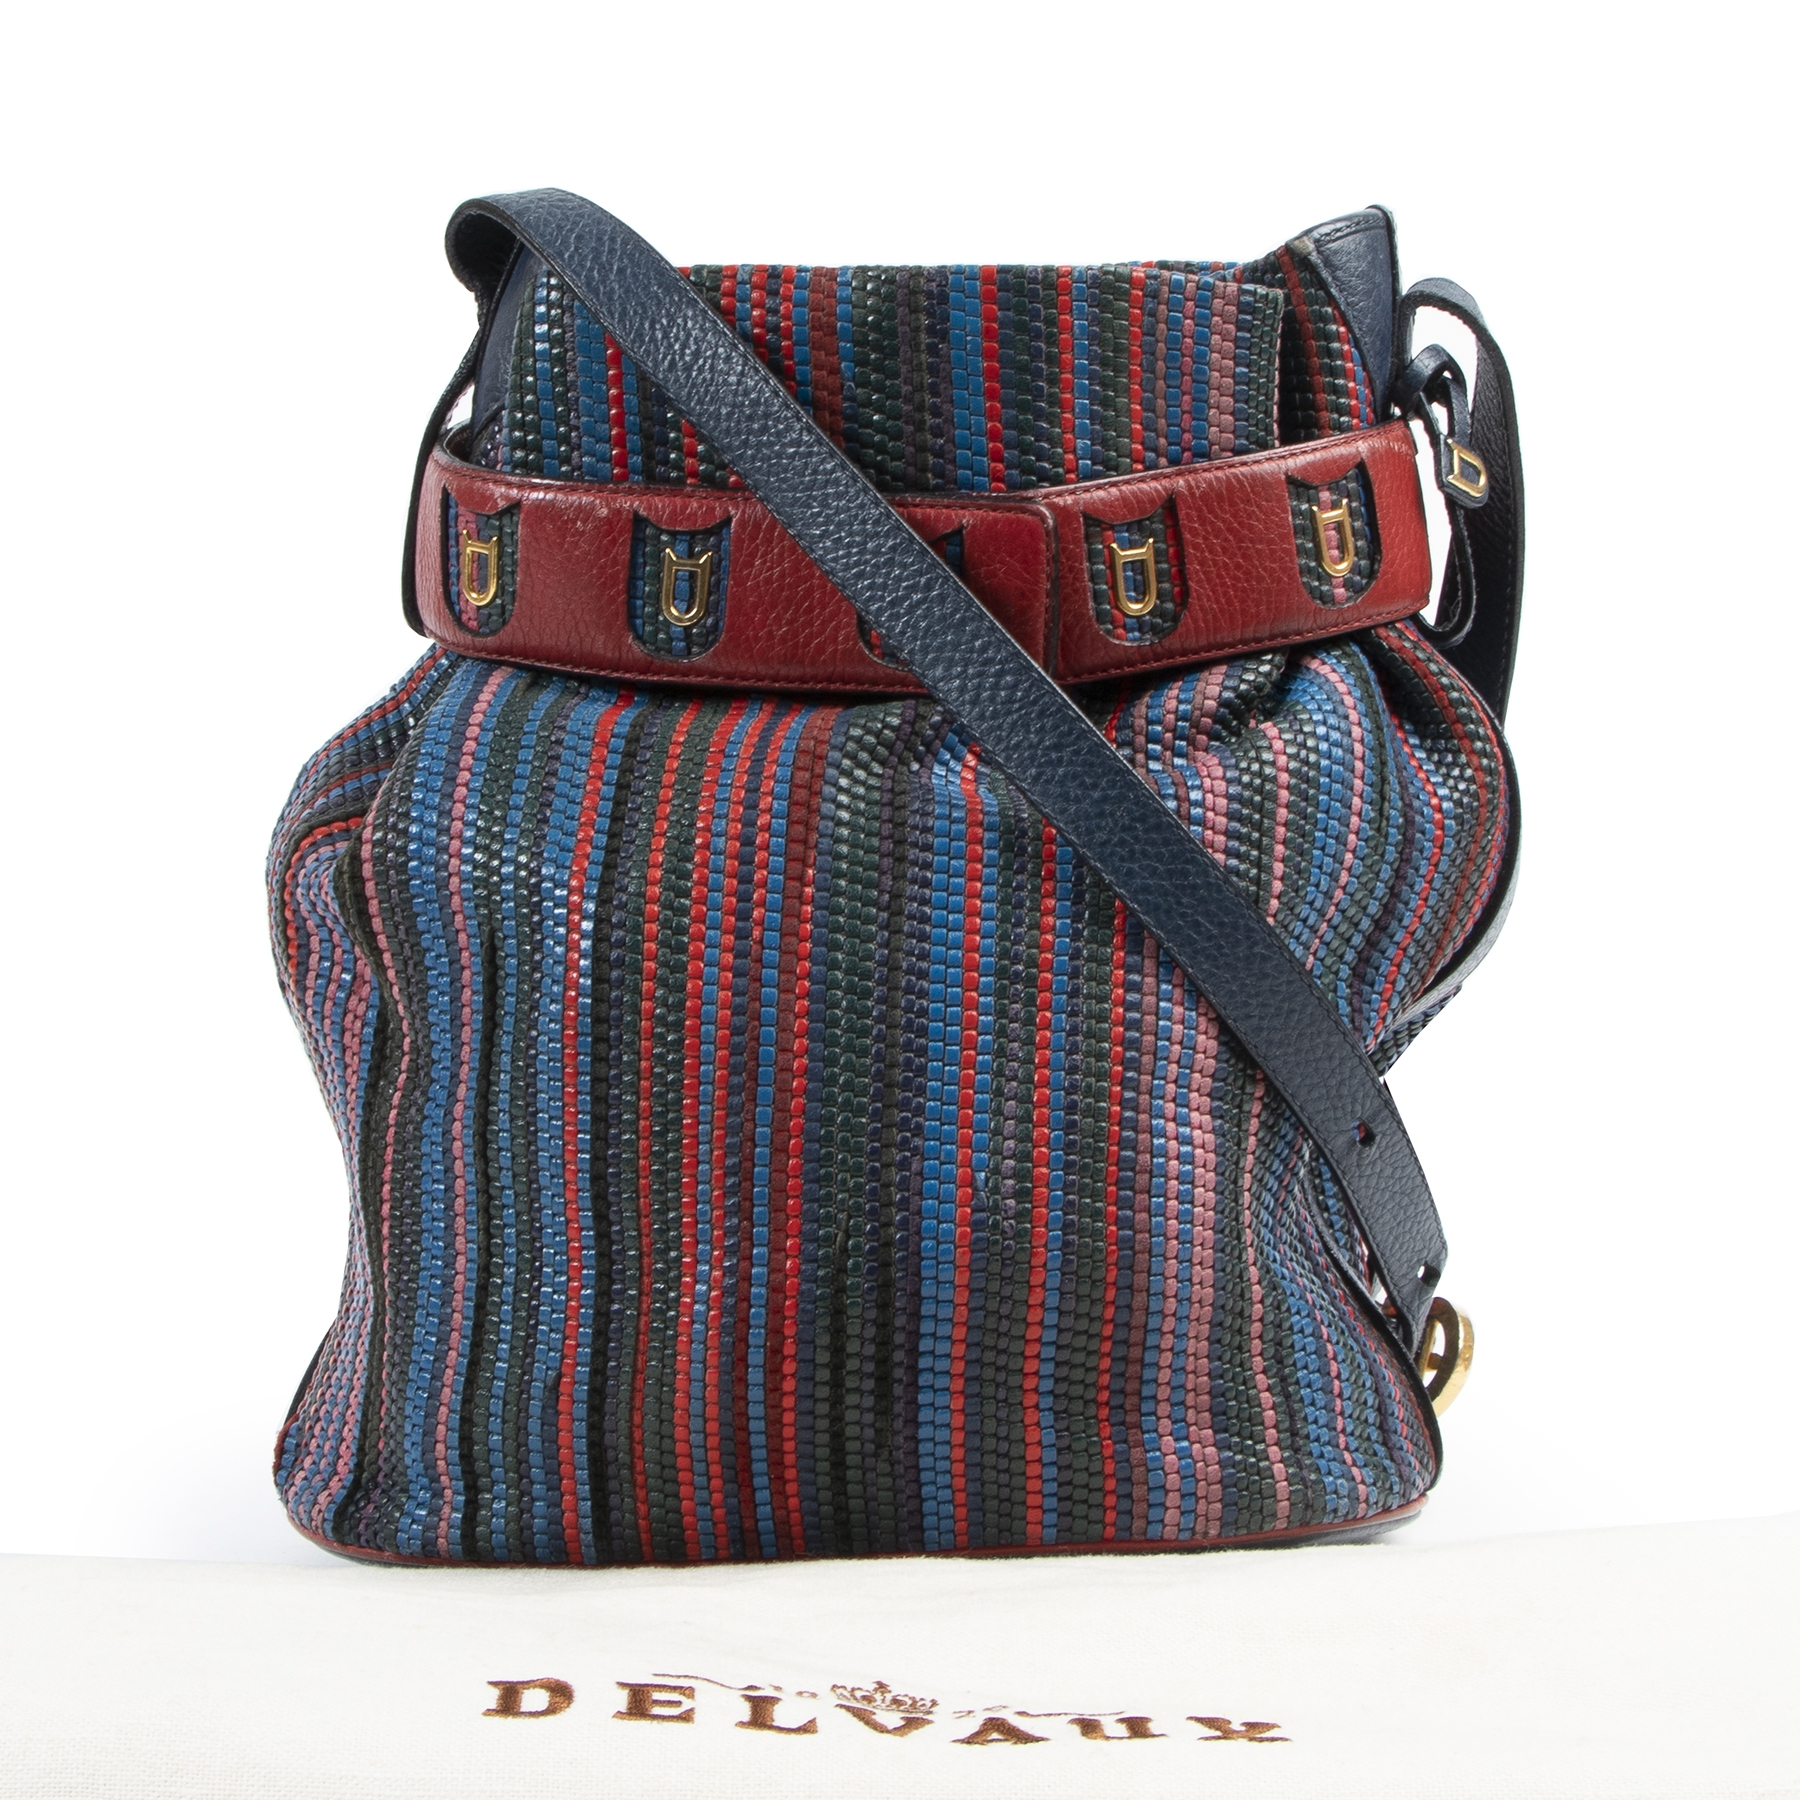 Delvaux Multicolor Toile de Cuir Calicot Bucket Bag